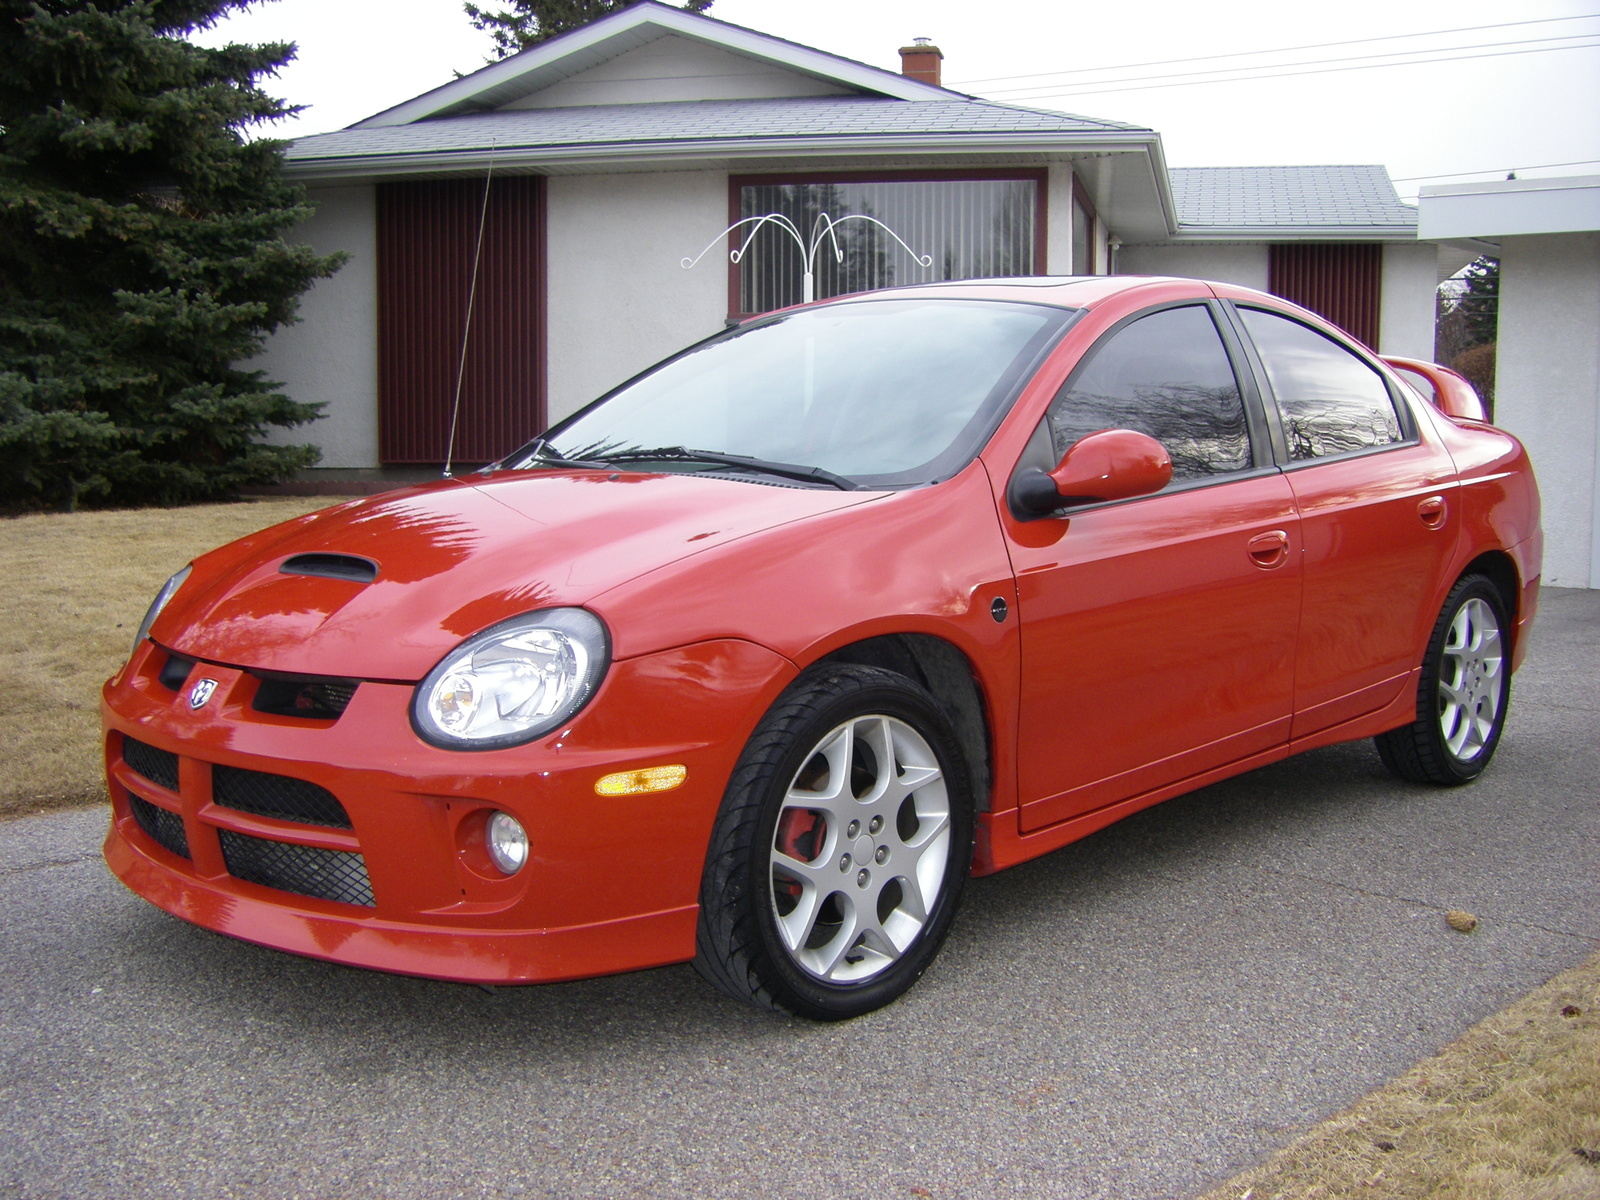 Srt Dodge Dart >> 2004 Dodge Neon SRT-4 - Overview - CarGurus